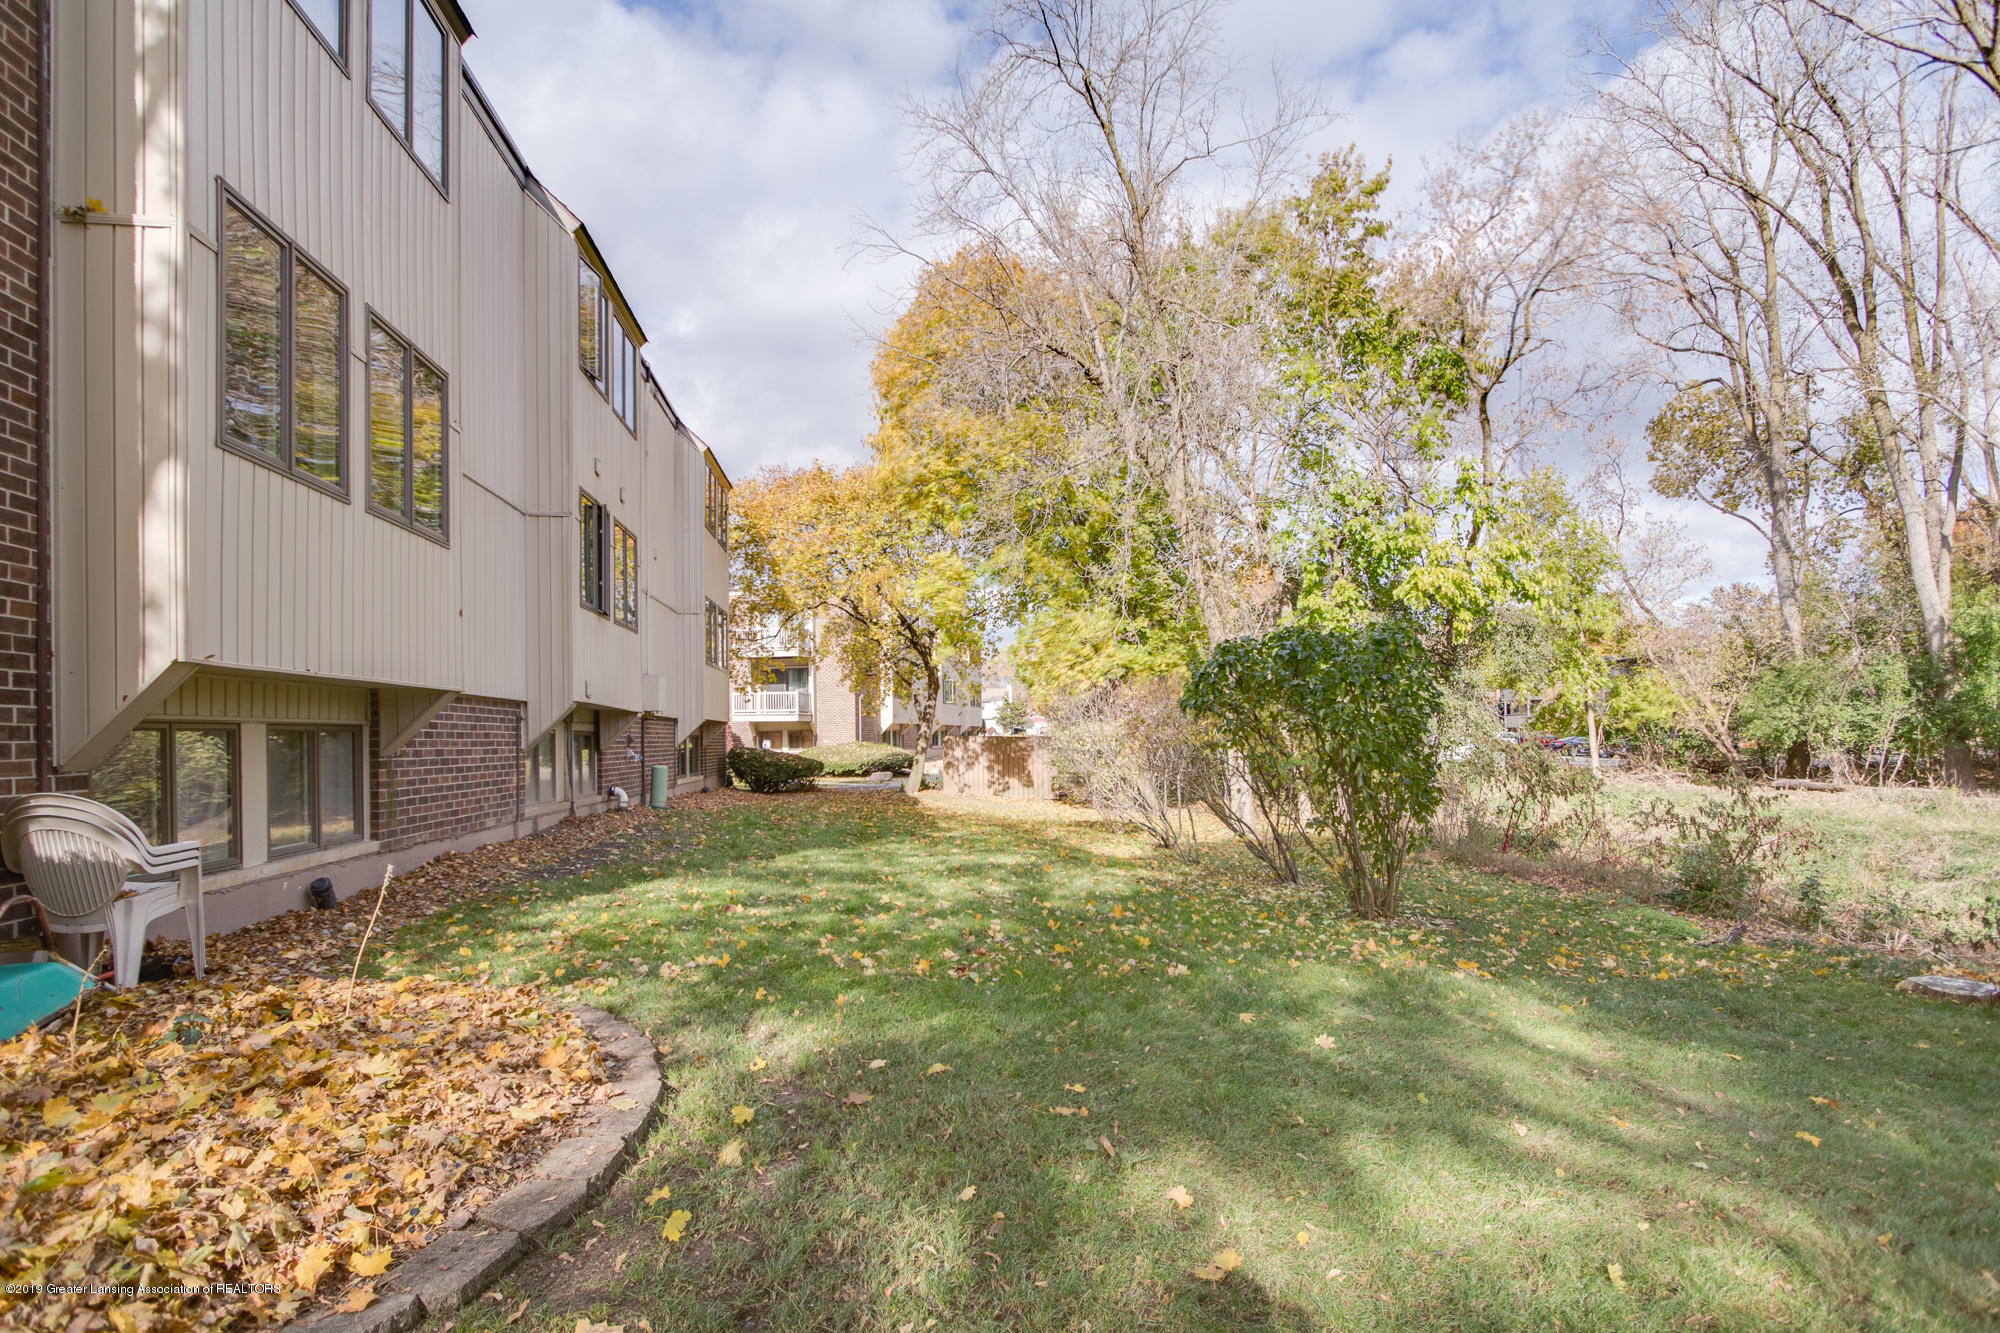 500 Woodingham Dr APT 2 - 500_Woodingham_JEFF-20 - 19